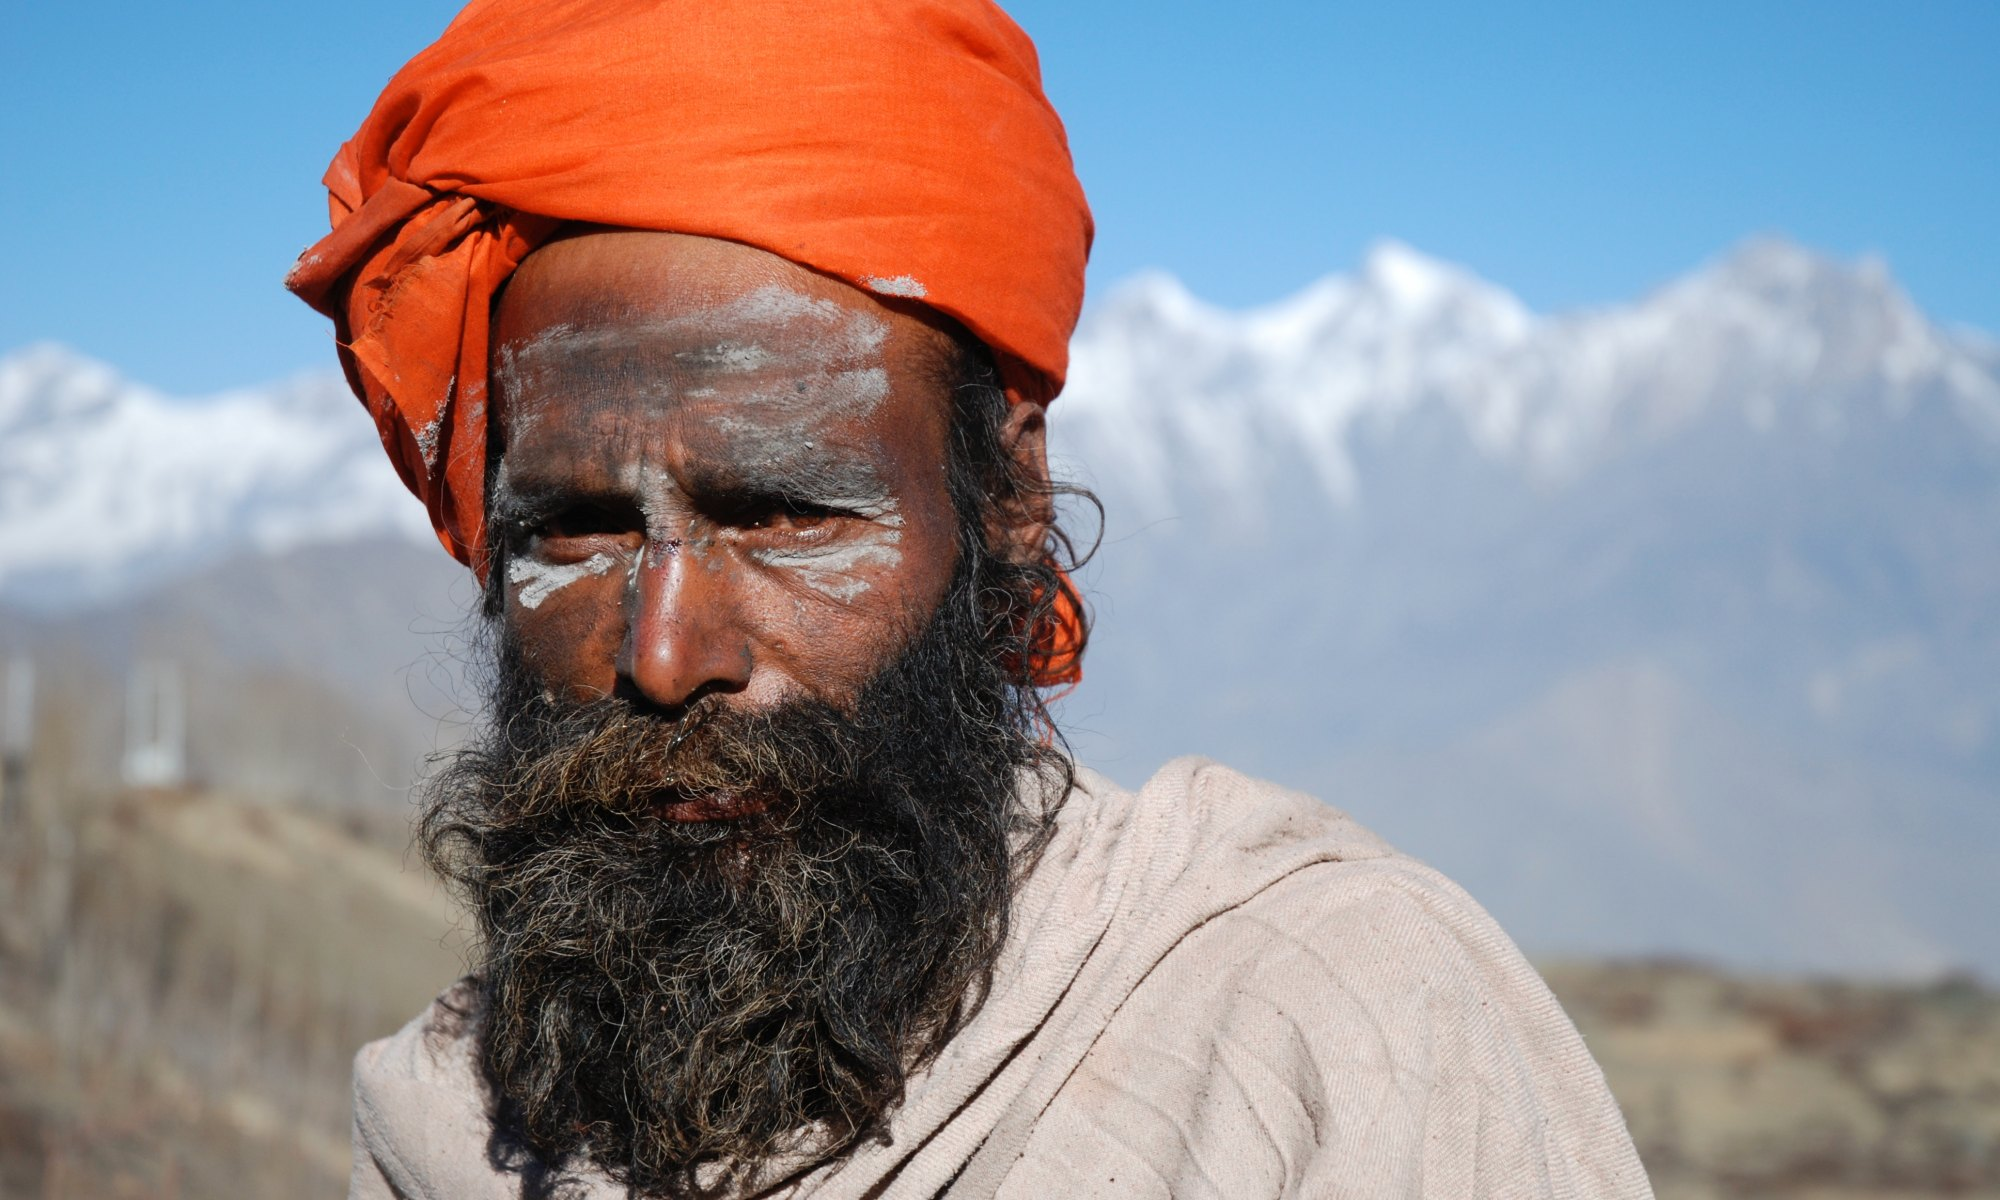 Brown man with big beard being authentic and wearing orange turban